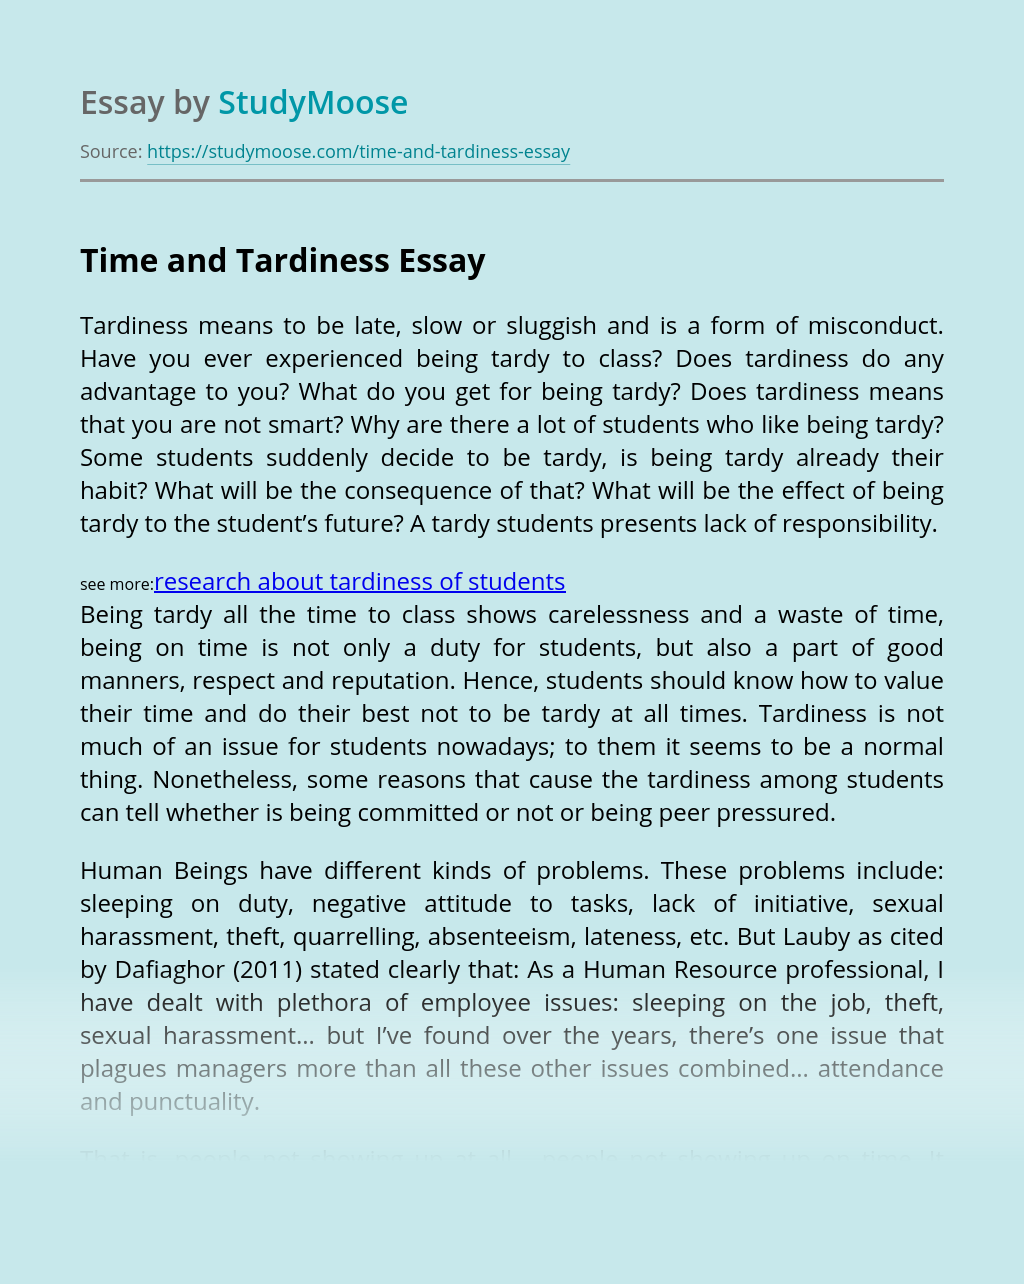 Time and Tardiness